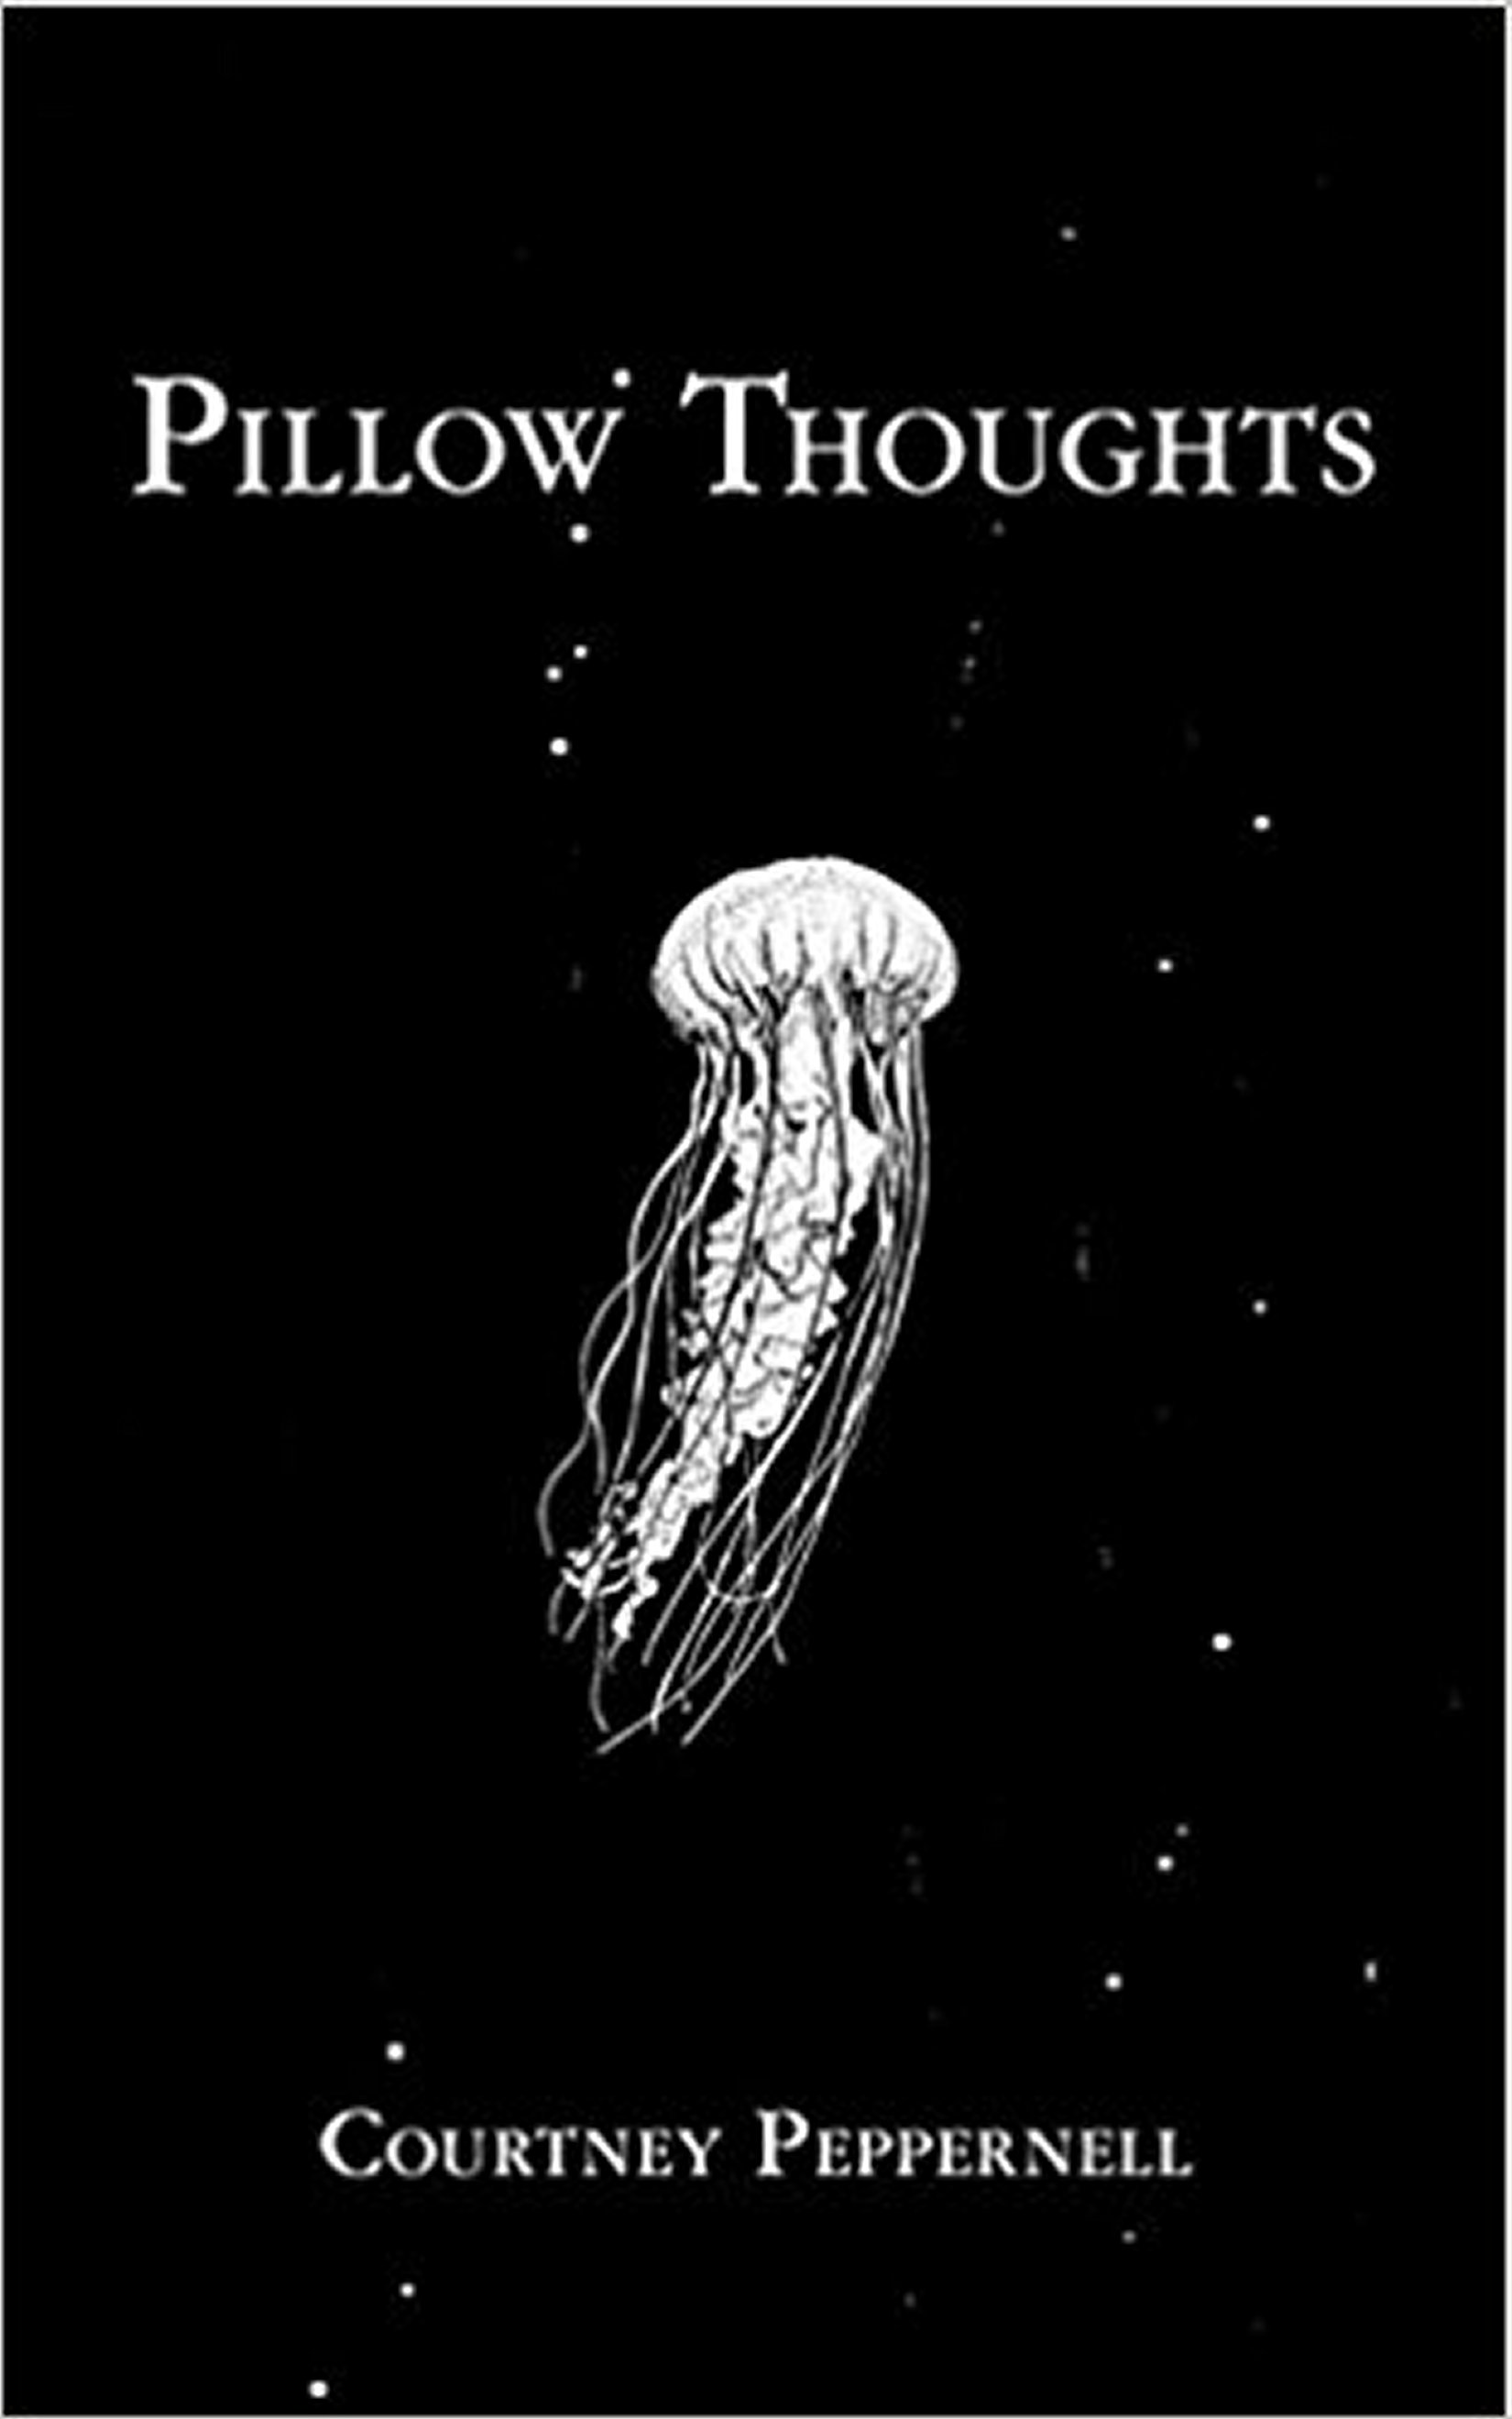 My Book Wish List: Pillow Thoughts